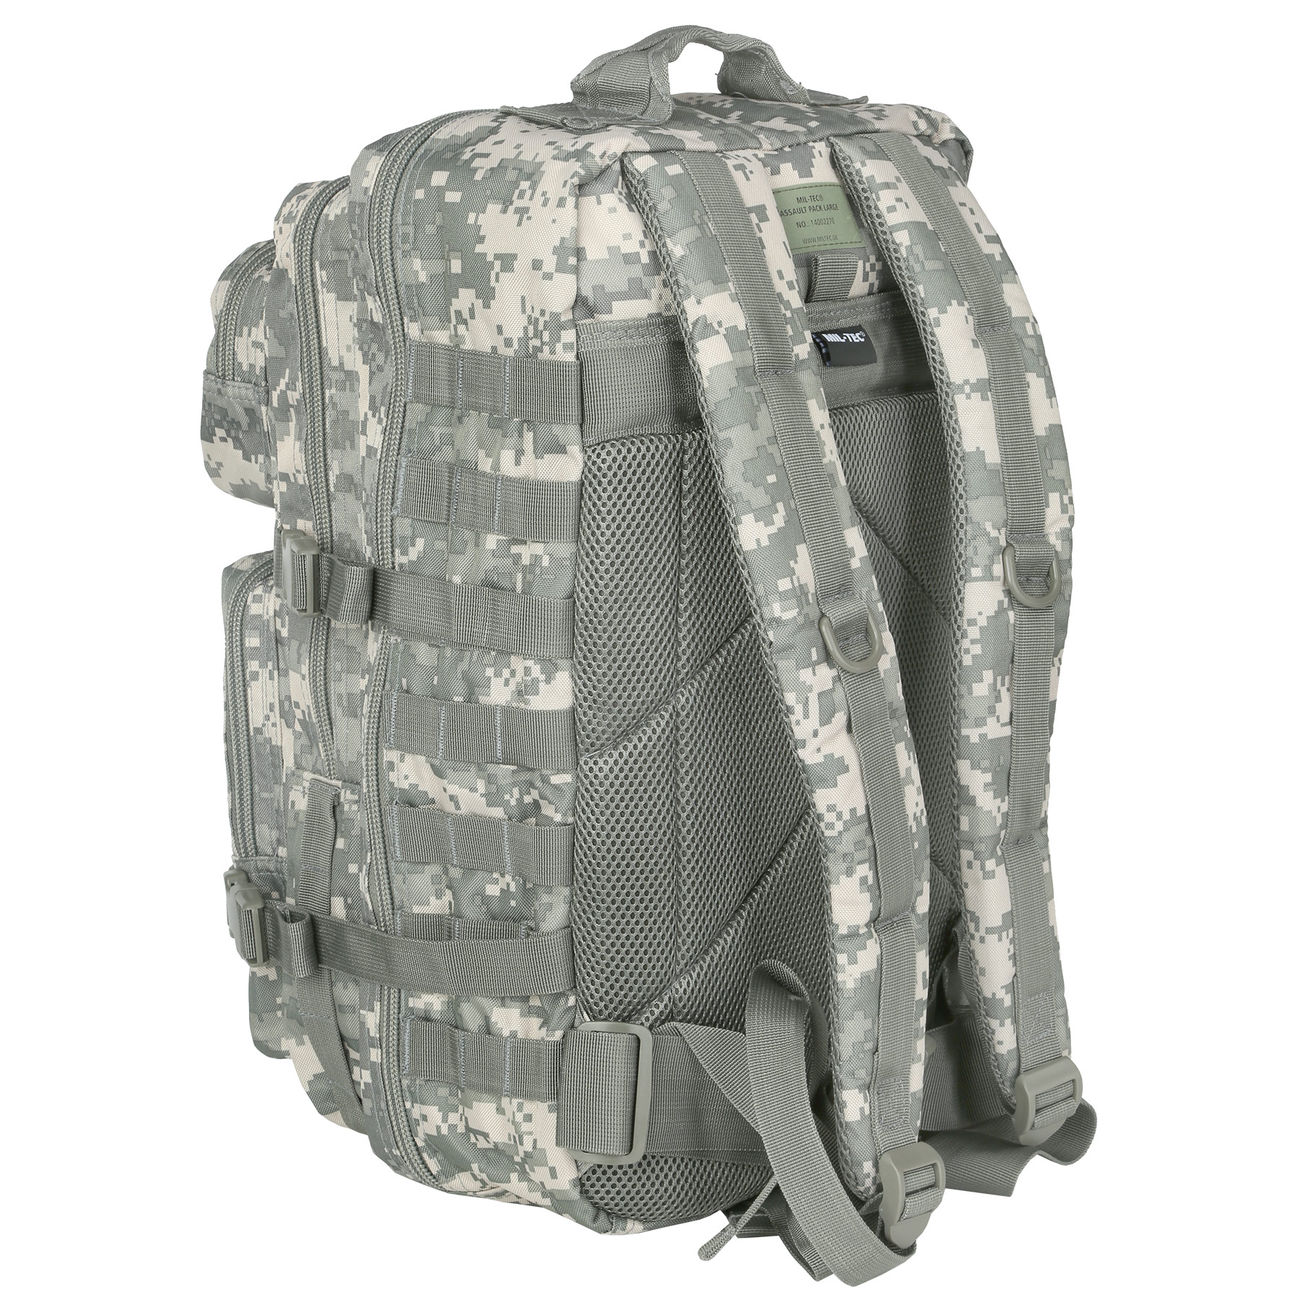 Mil-Tec Rucksack US Assault Pack II 40 Liter at-digital 3